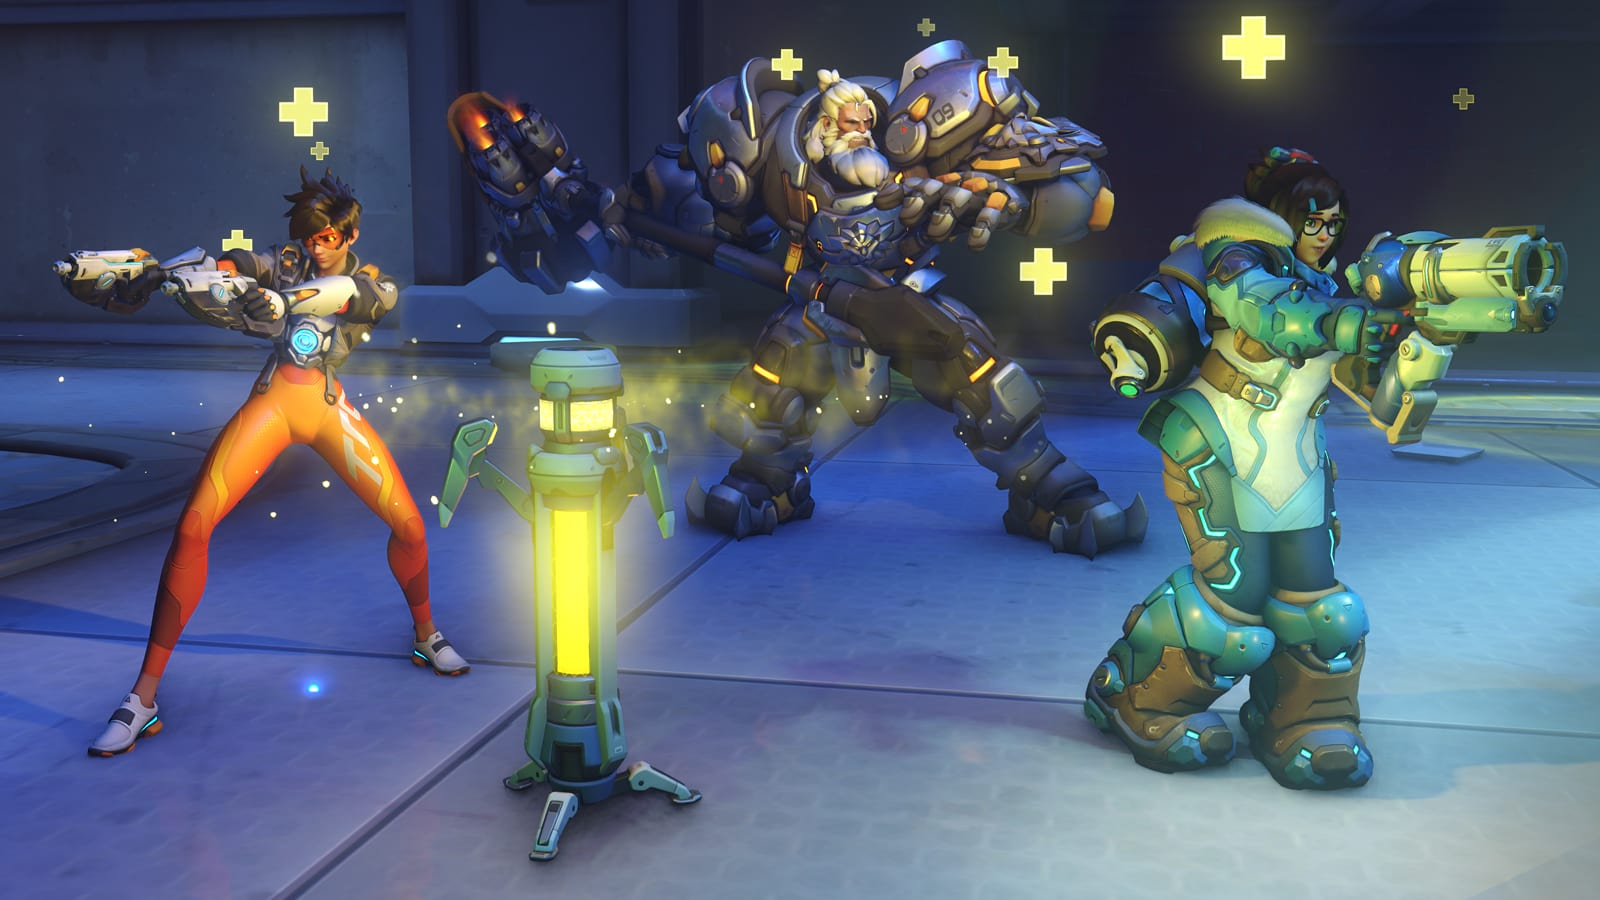 Overwatch 2 Tracer, Reinhardt and Mei next to a healing beacon